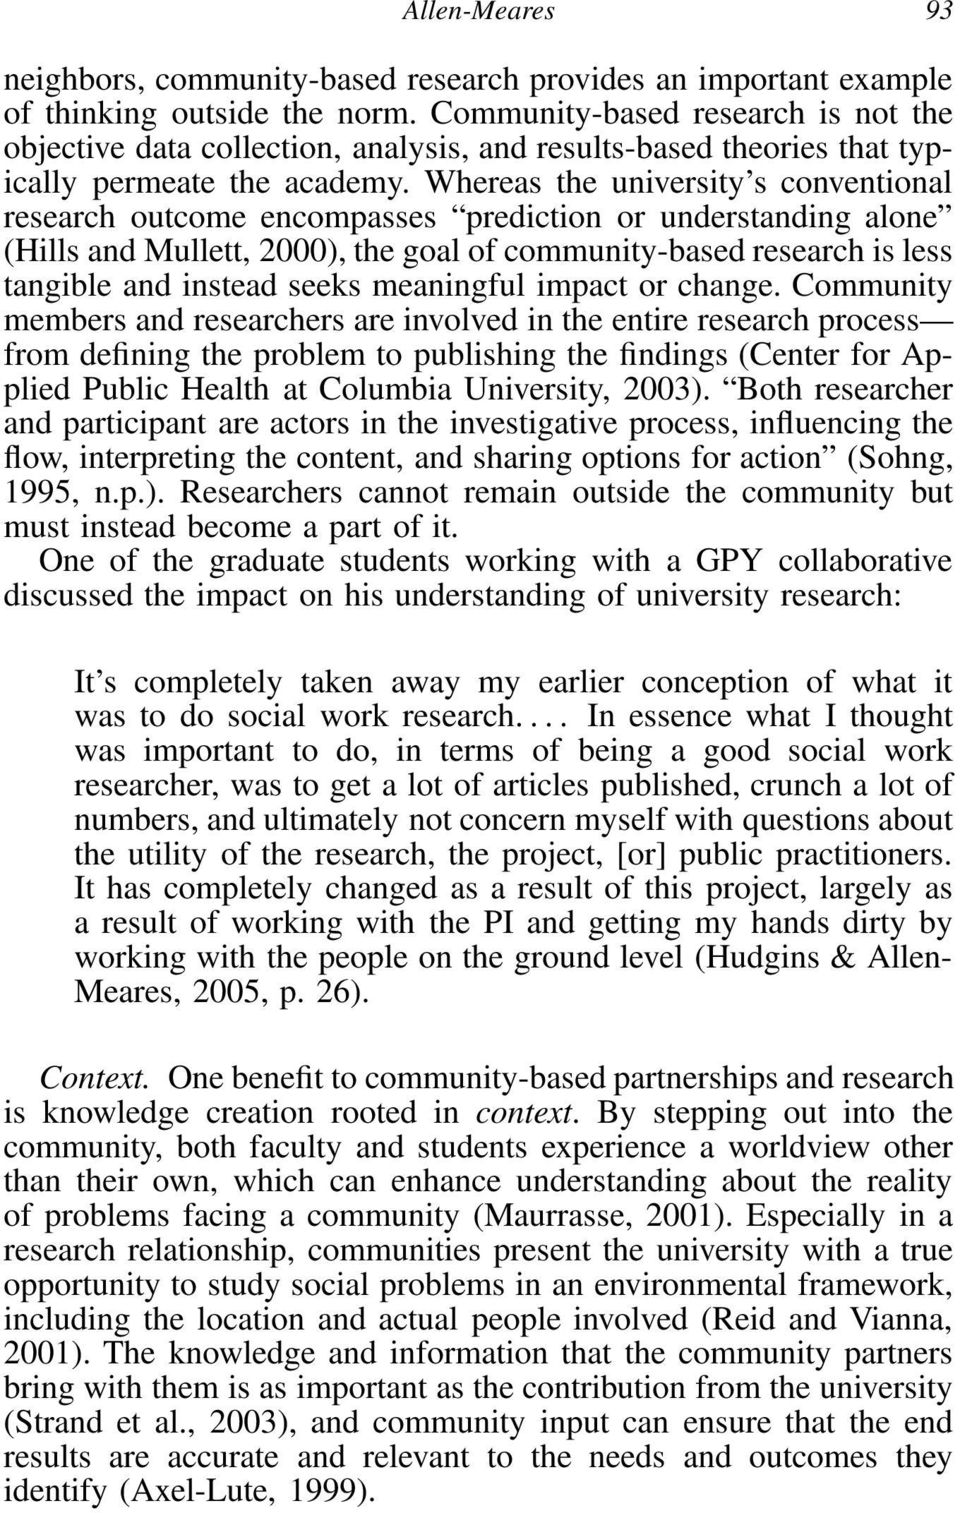 Whereas the university s conventional research outcome encompasses prediction or understanding alone (Hills and Mullett, 2000), the goal of community-based research is less tangible and instead seeks